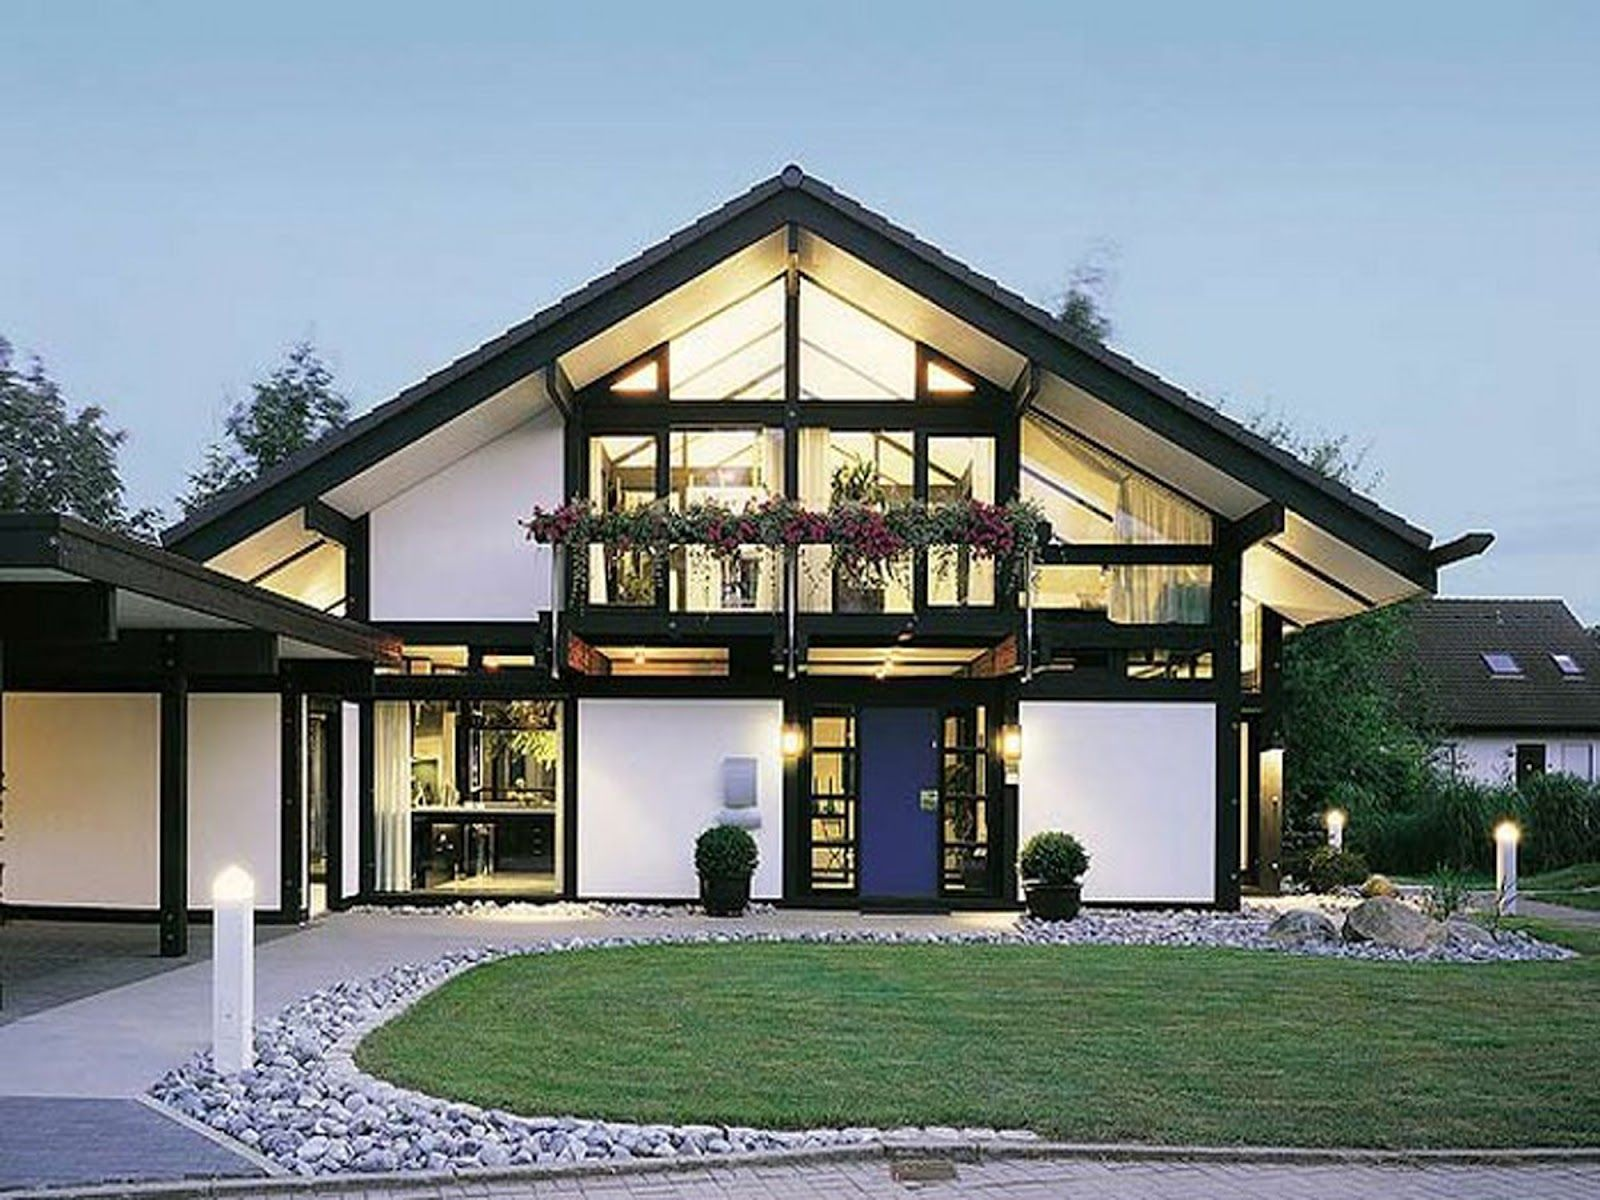 New home designs latest   Beautiful latest modern home designs. New home designs latest   Beautiful latest modern home designs